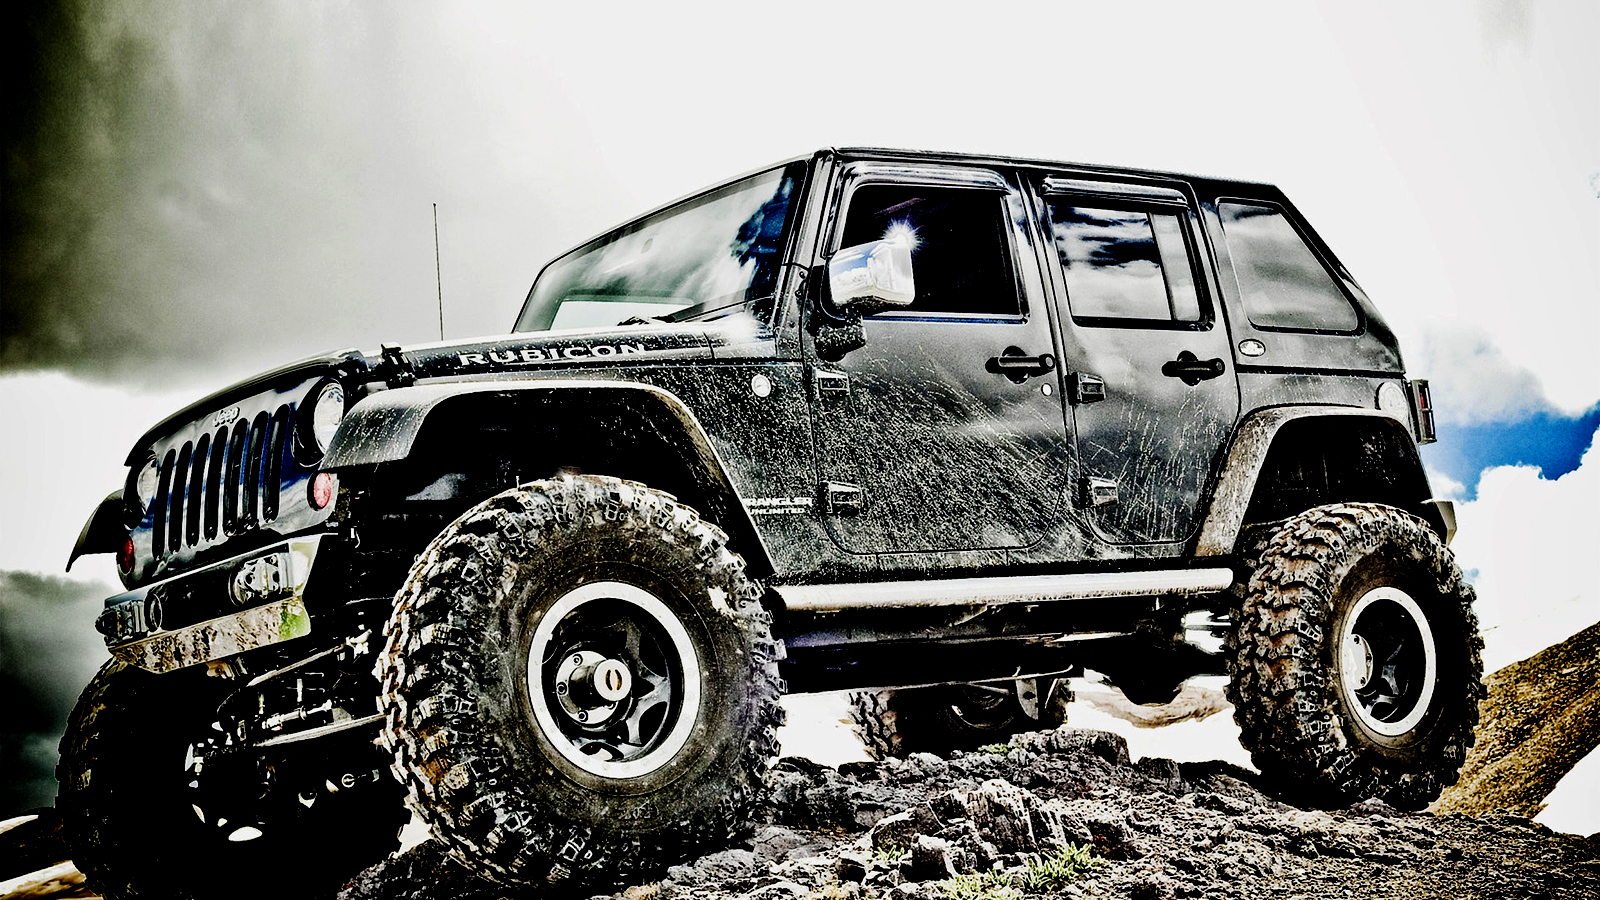 Off Road Vehicles 4X4 Jeeps HD Wallpapers  HD Wallpapers ,Backgrounds ,Photos ,Pictures, Image ,PC